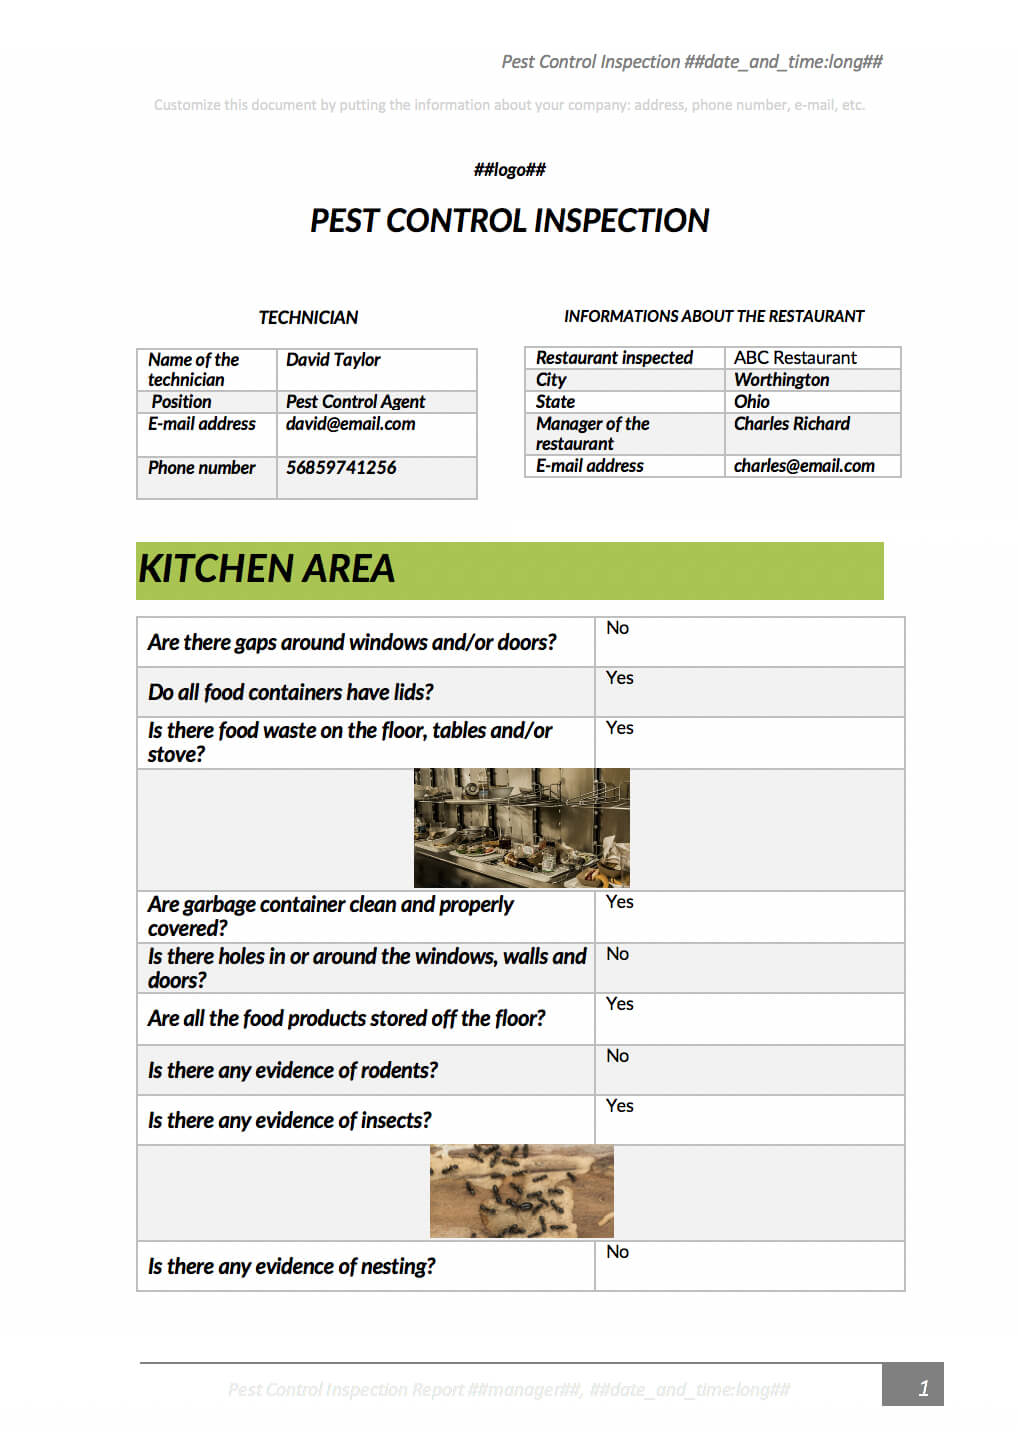 Pest Control Inspection With Kizeo Forms From Your Cellphone Intended For Pest Control Report Template